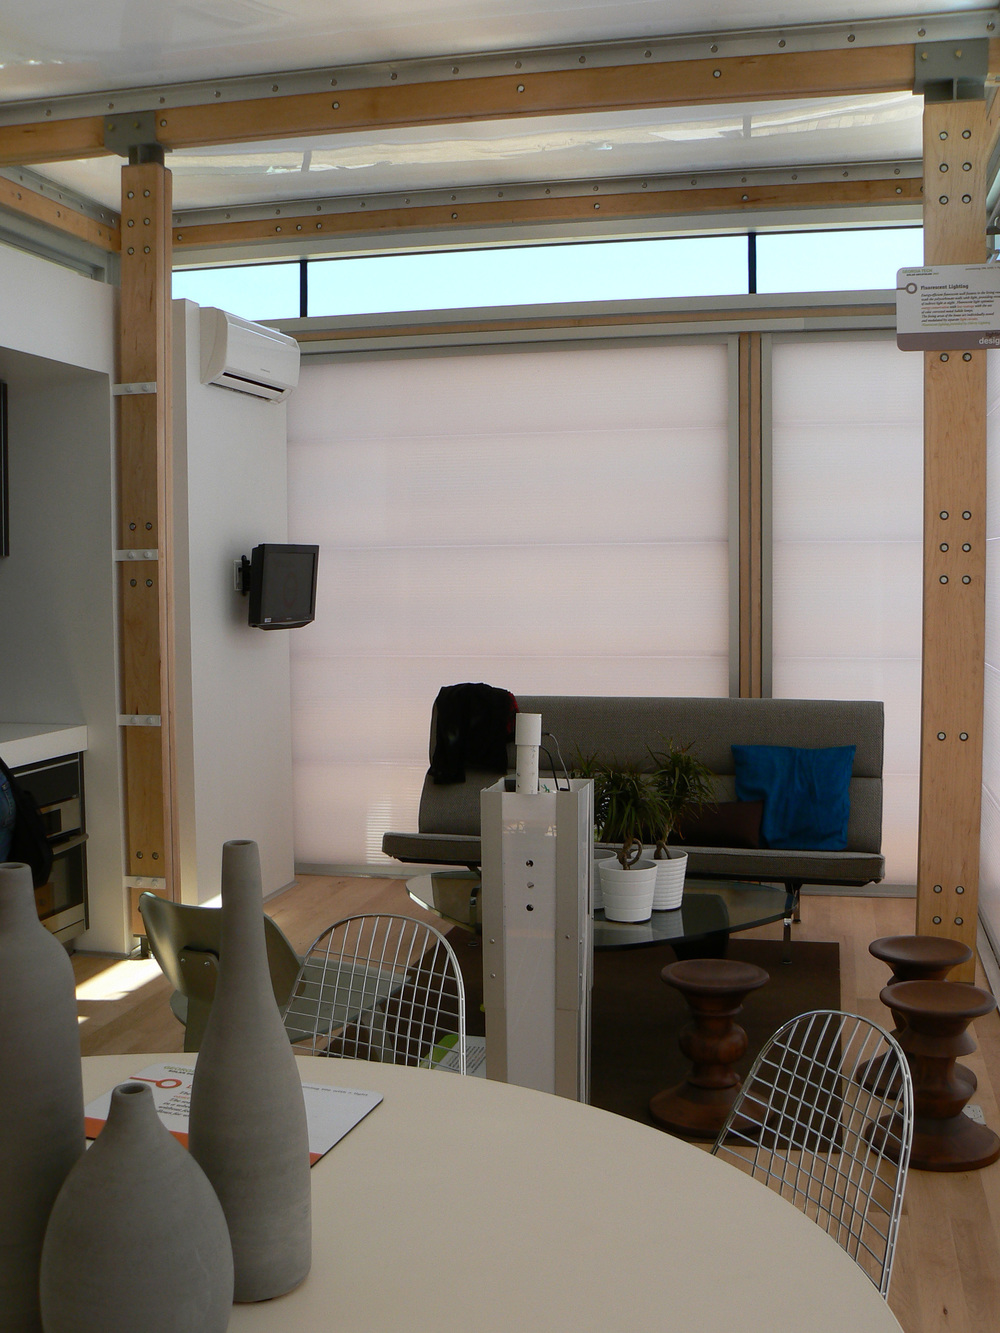 solar decathlon-interior 2.jpg